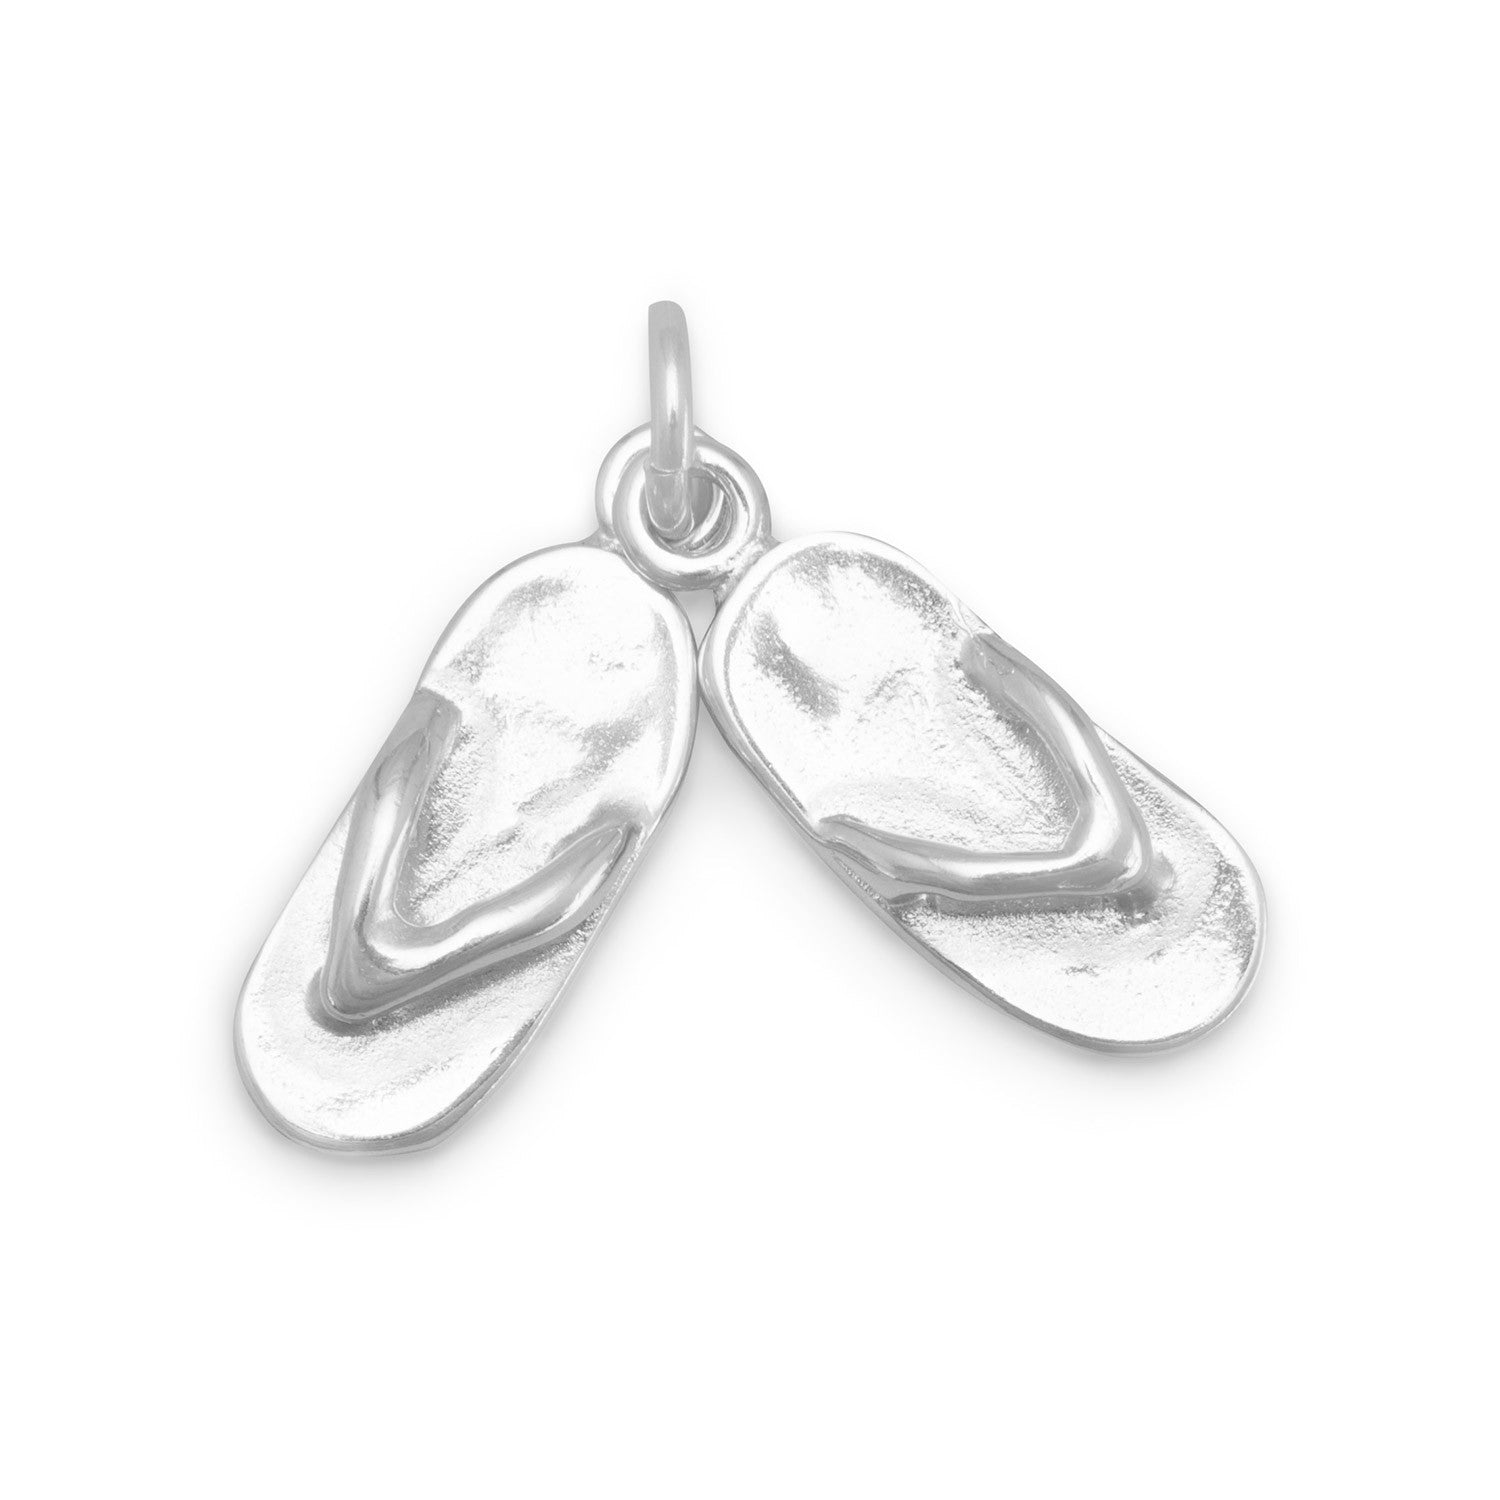 Pair of Movable SANDALS Charm